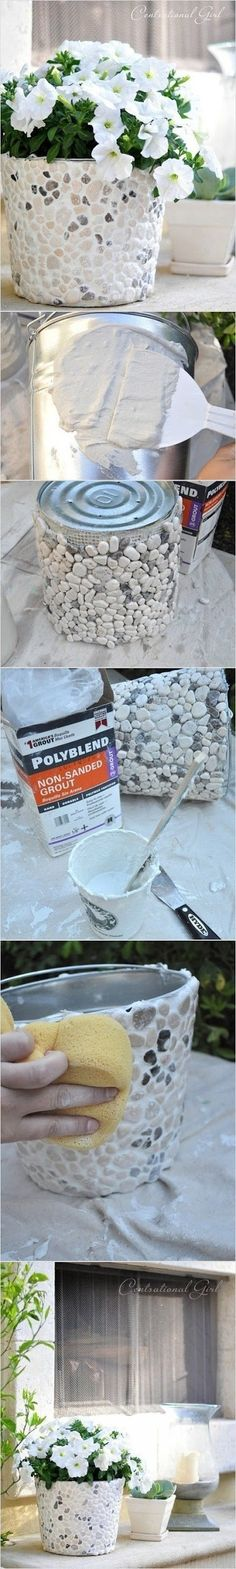 How to make your own stone flower pot. Making one for each of our mothers and godmother a for Mother's Day